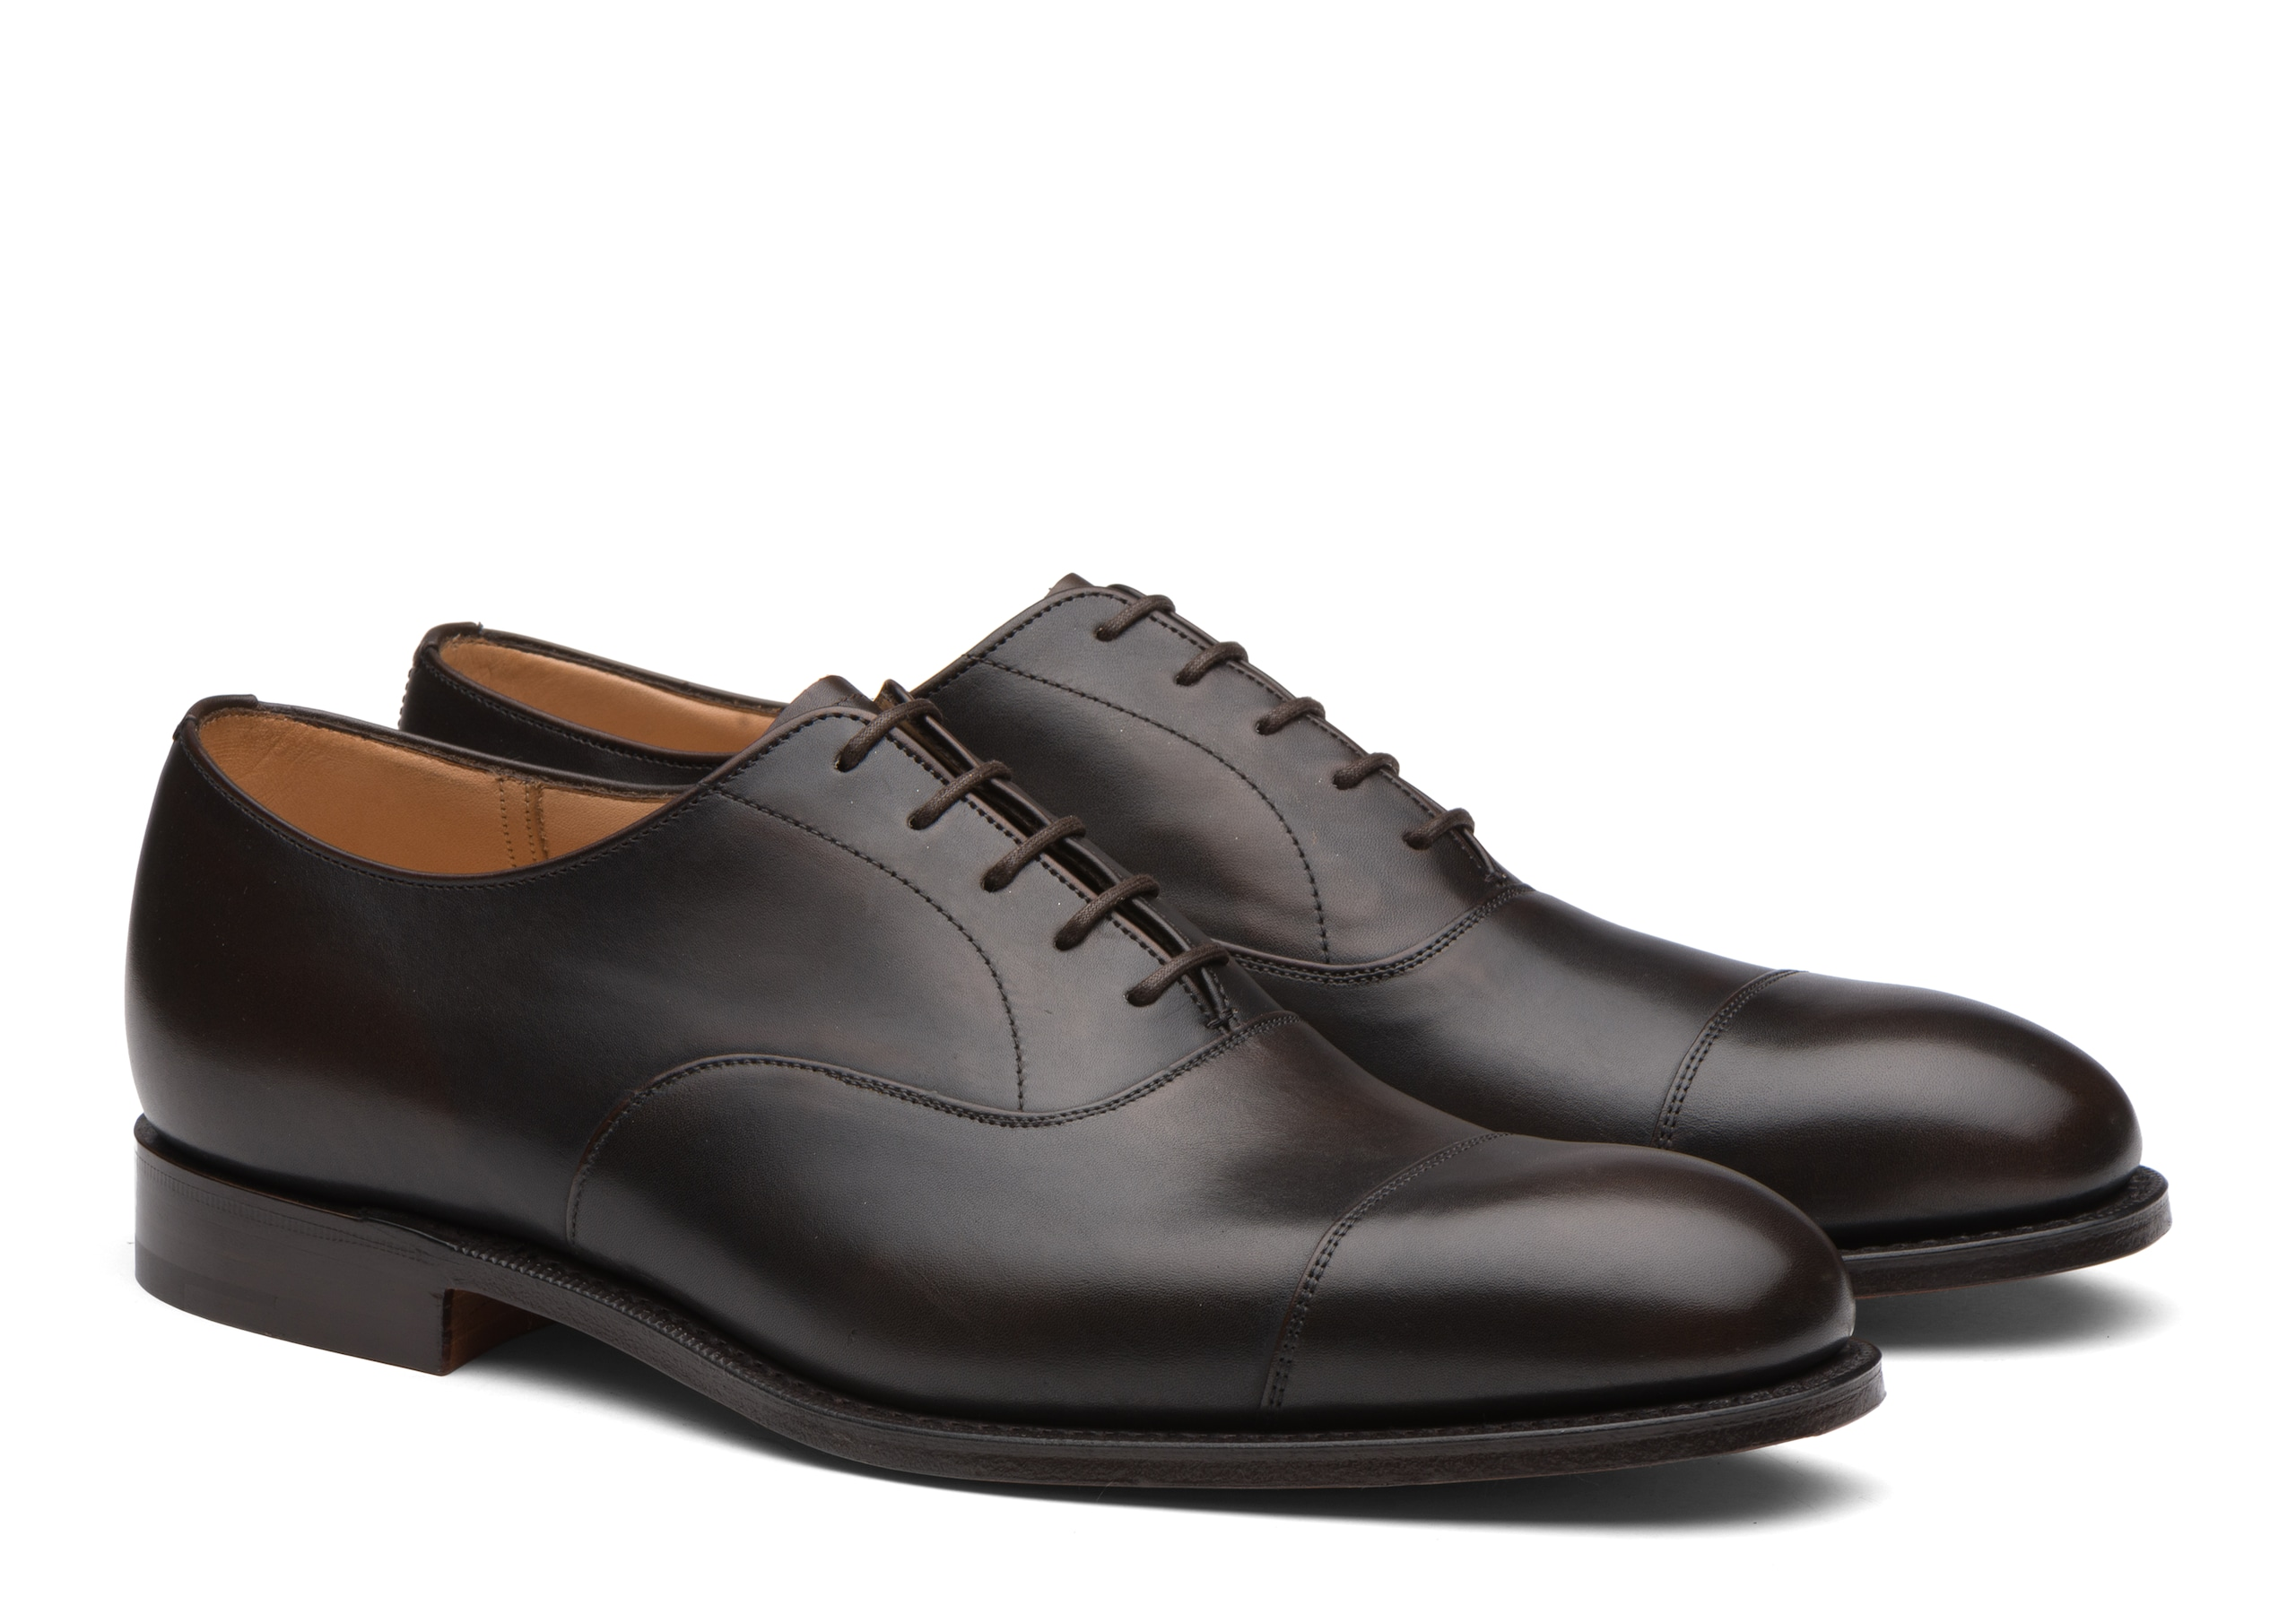 Consul^ Church's Polished Fumè Oxford Brown